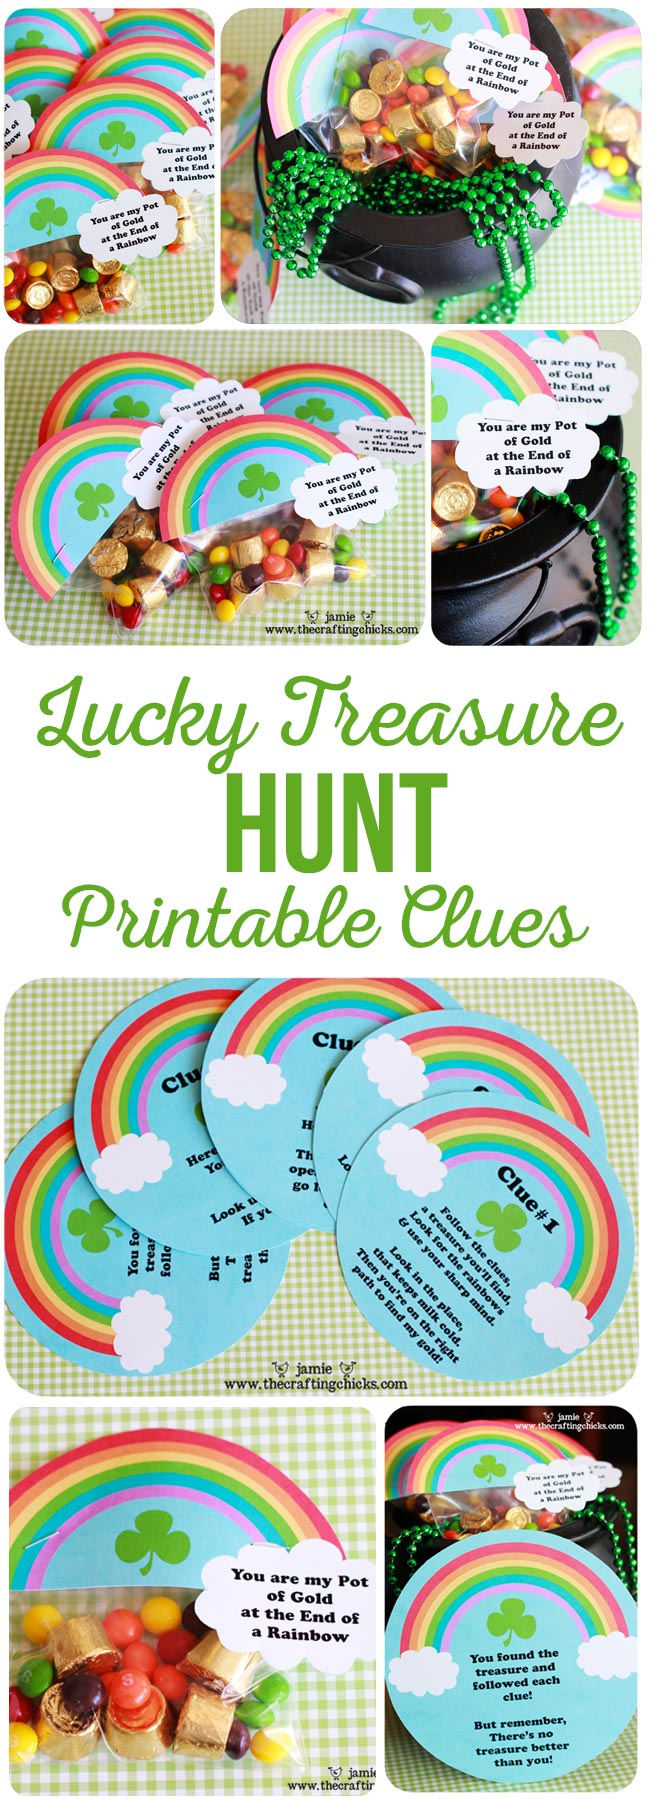 St Patrick Treasure Hunt Printable Clues